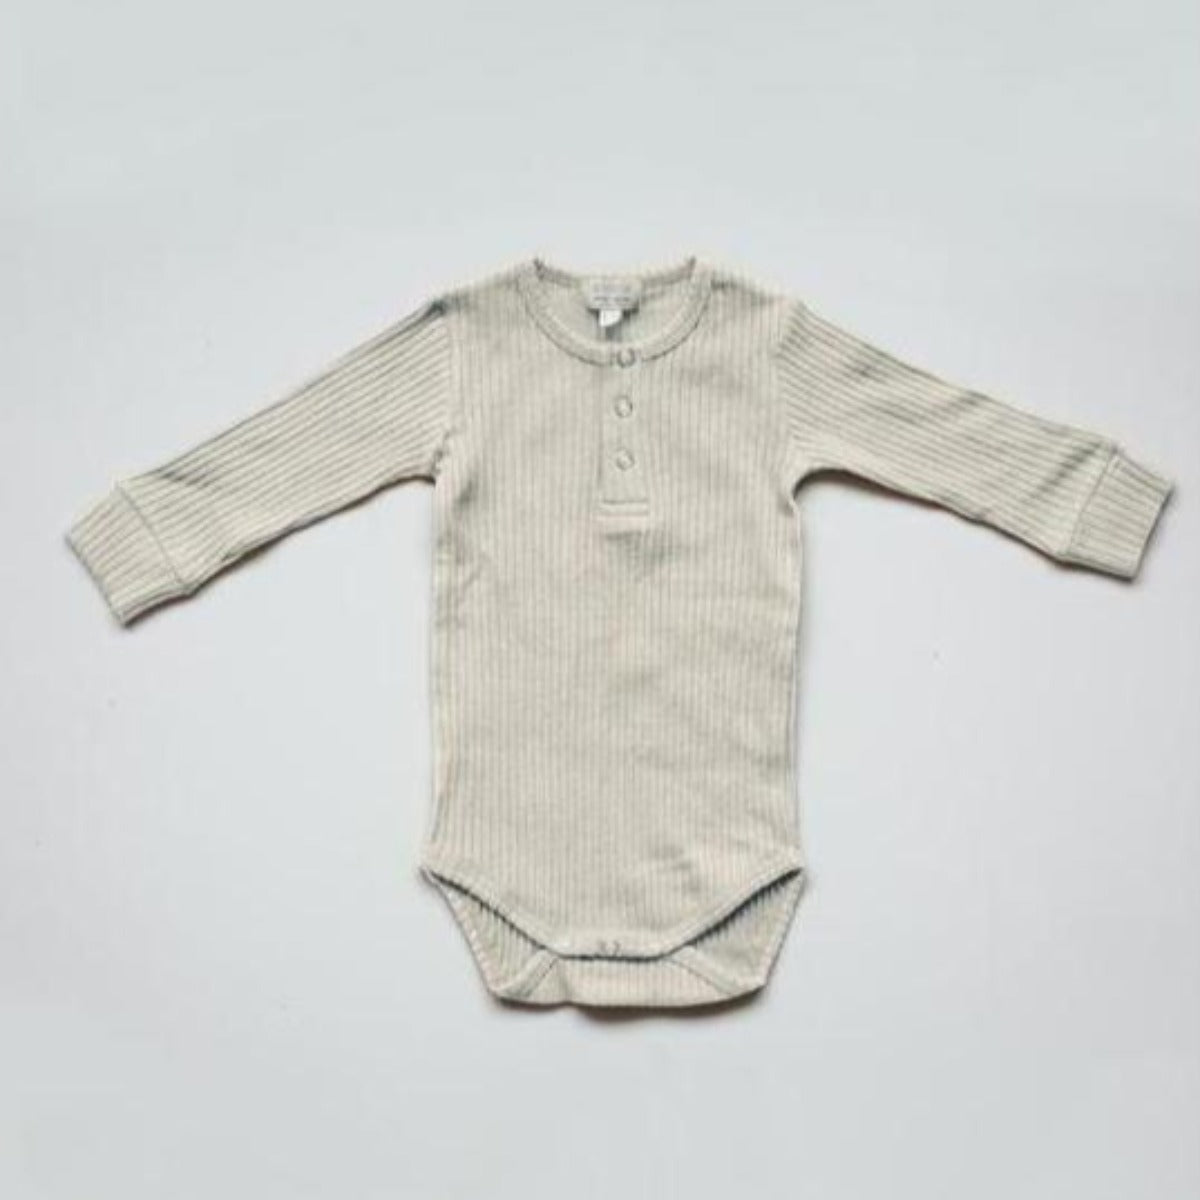 The Simple Folk ribbed body, ecru